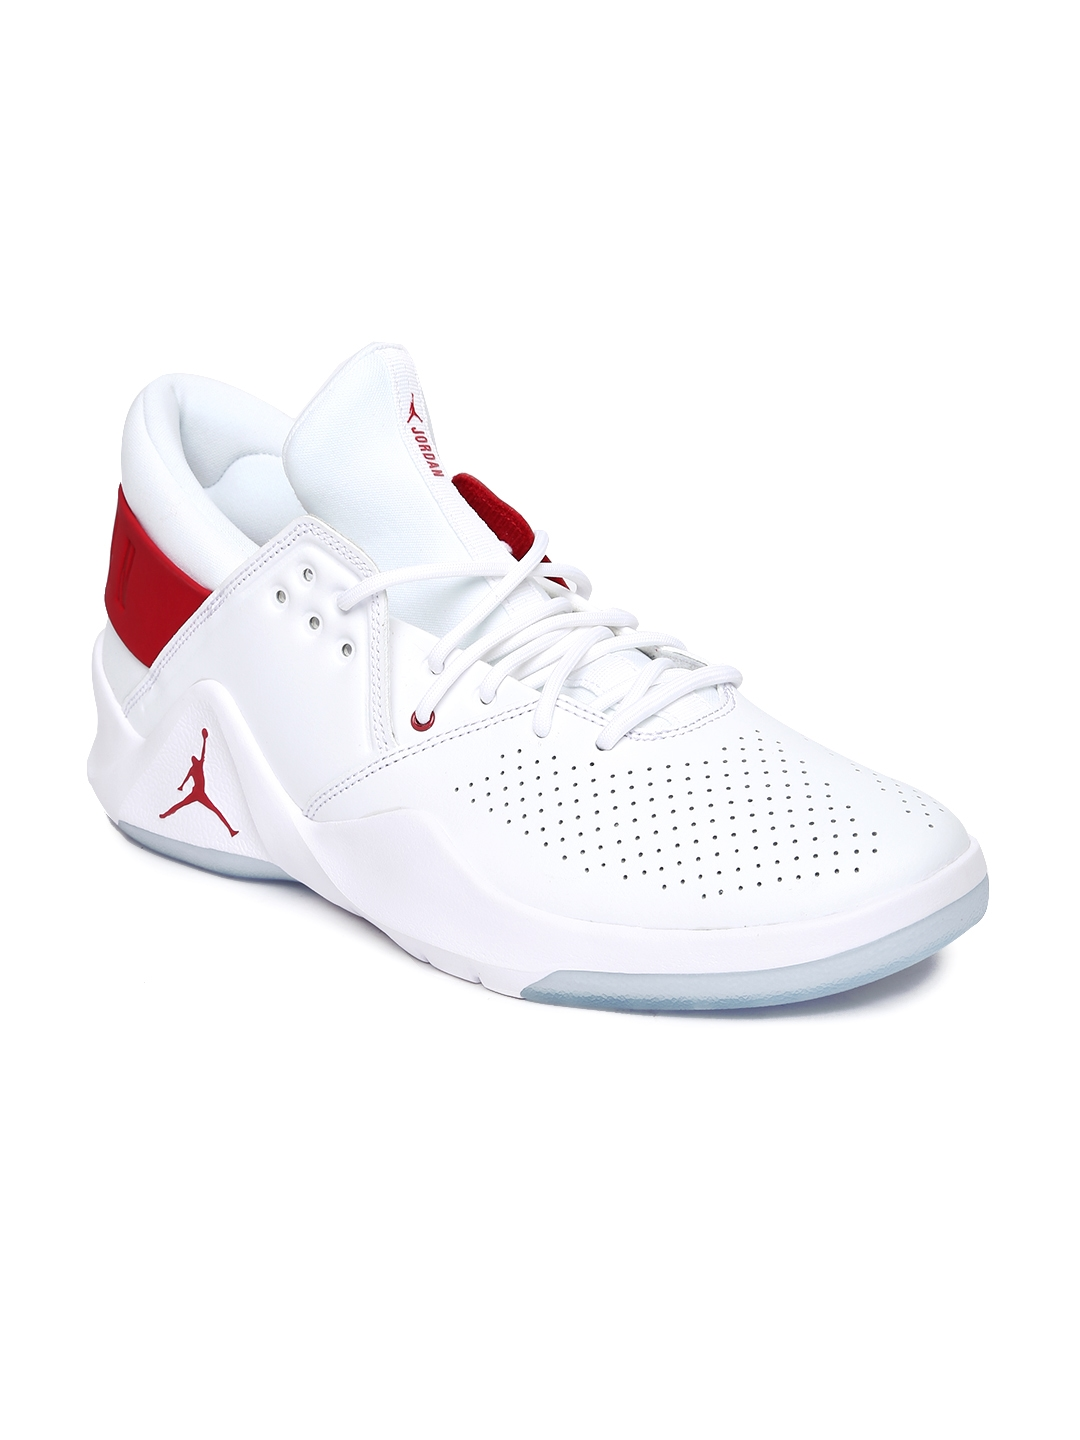 c6c463e0cfbc35 Buy Nike Men White Leather JORDAN FLIGHT FRESH Mid Top Basketball ...